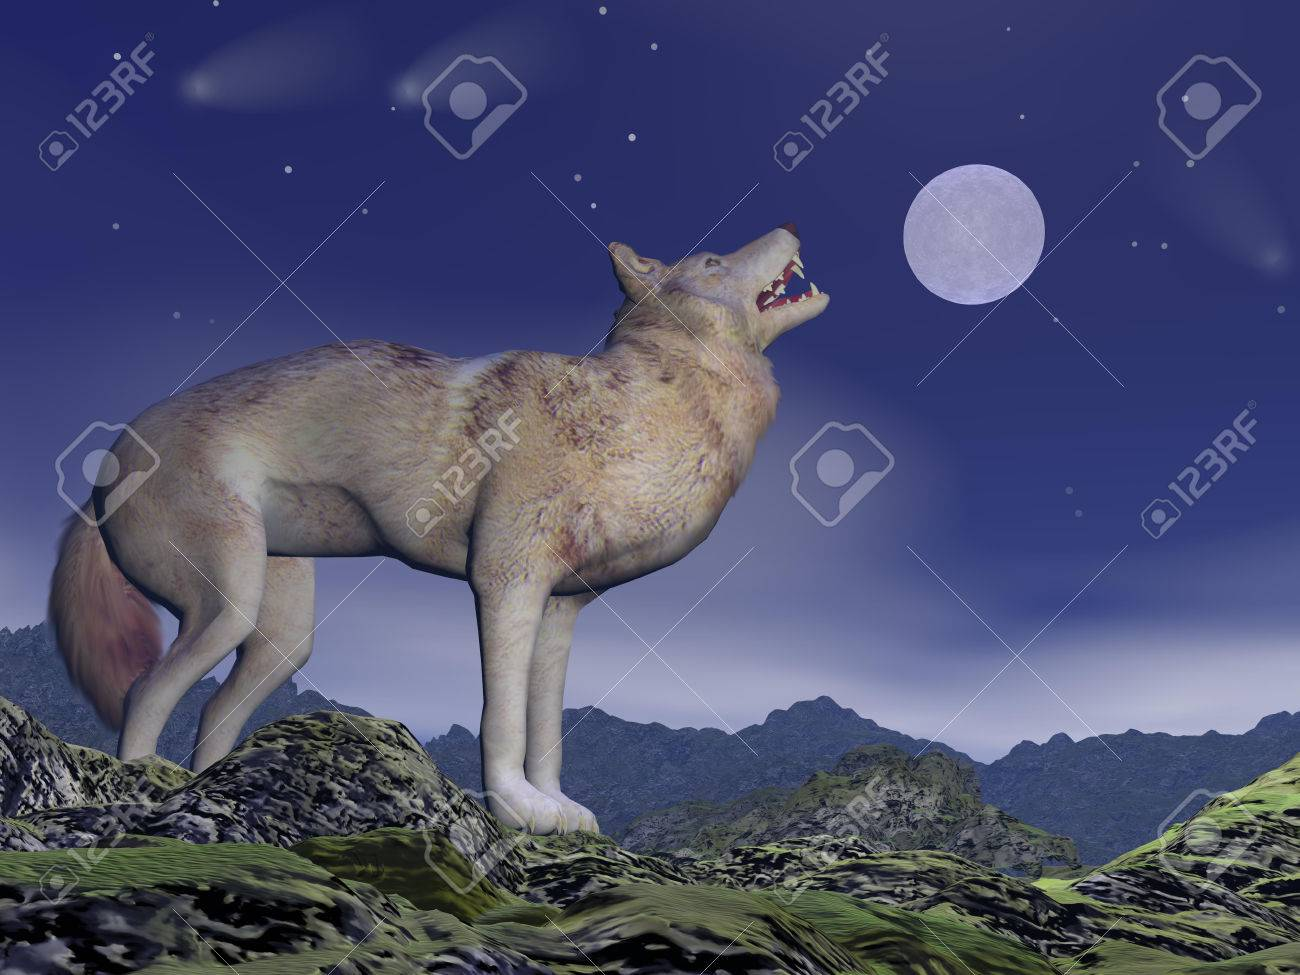 one wolf howling at full moon by deep blue night upon the